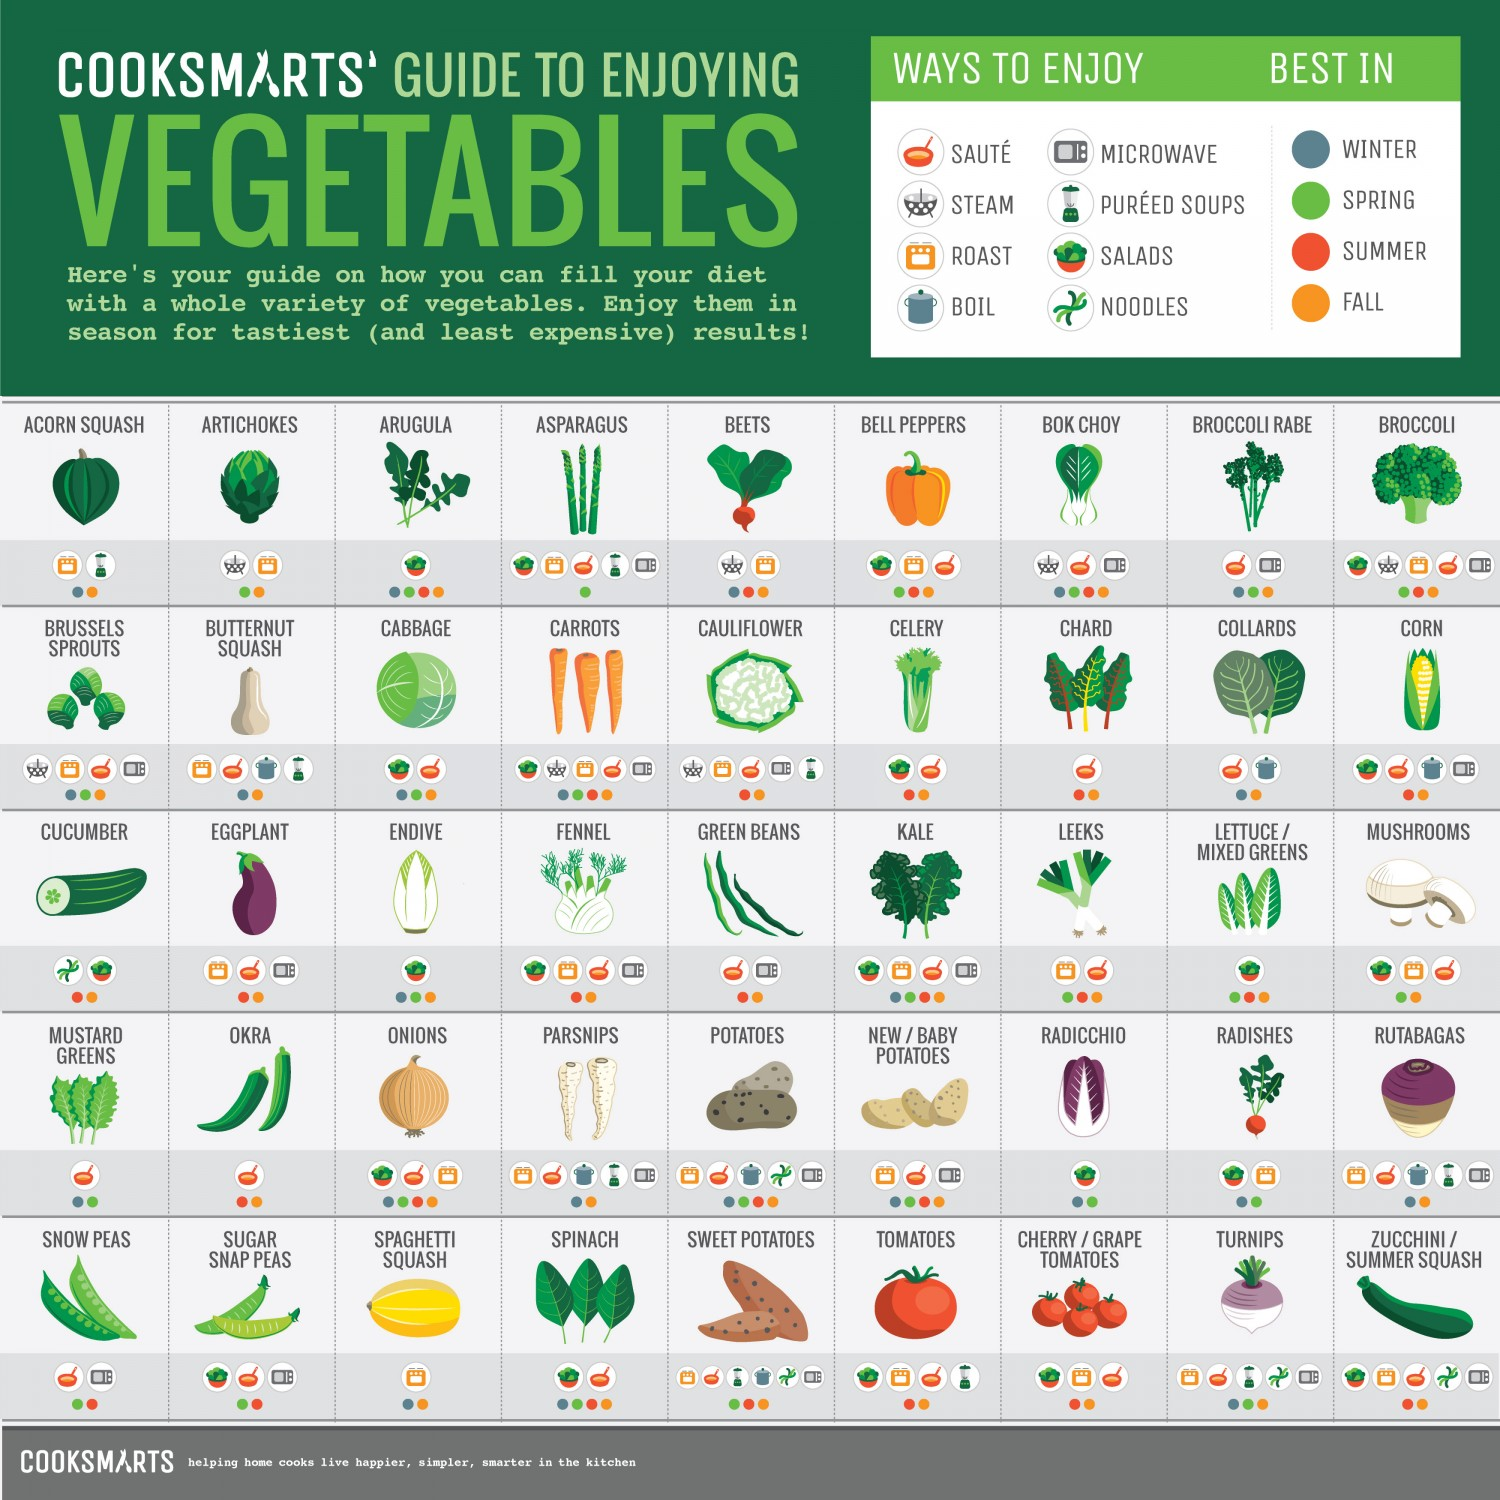 A Guide To Enjoying Vegetables